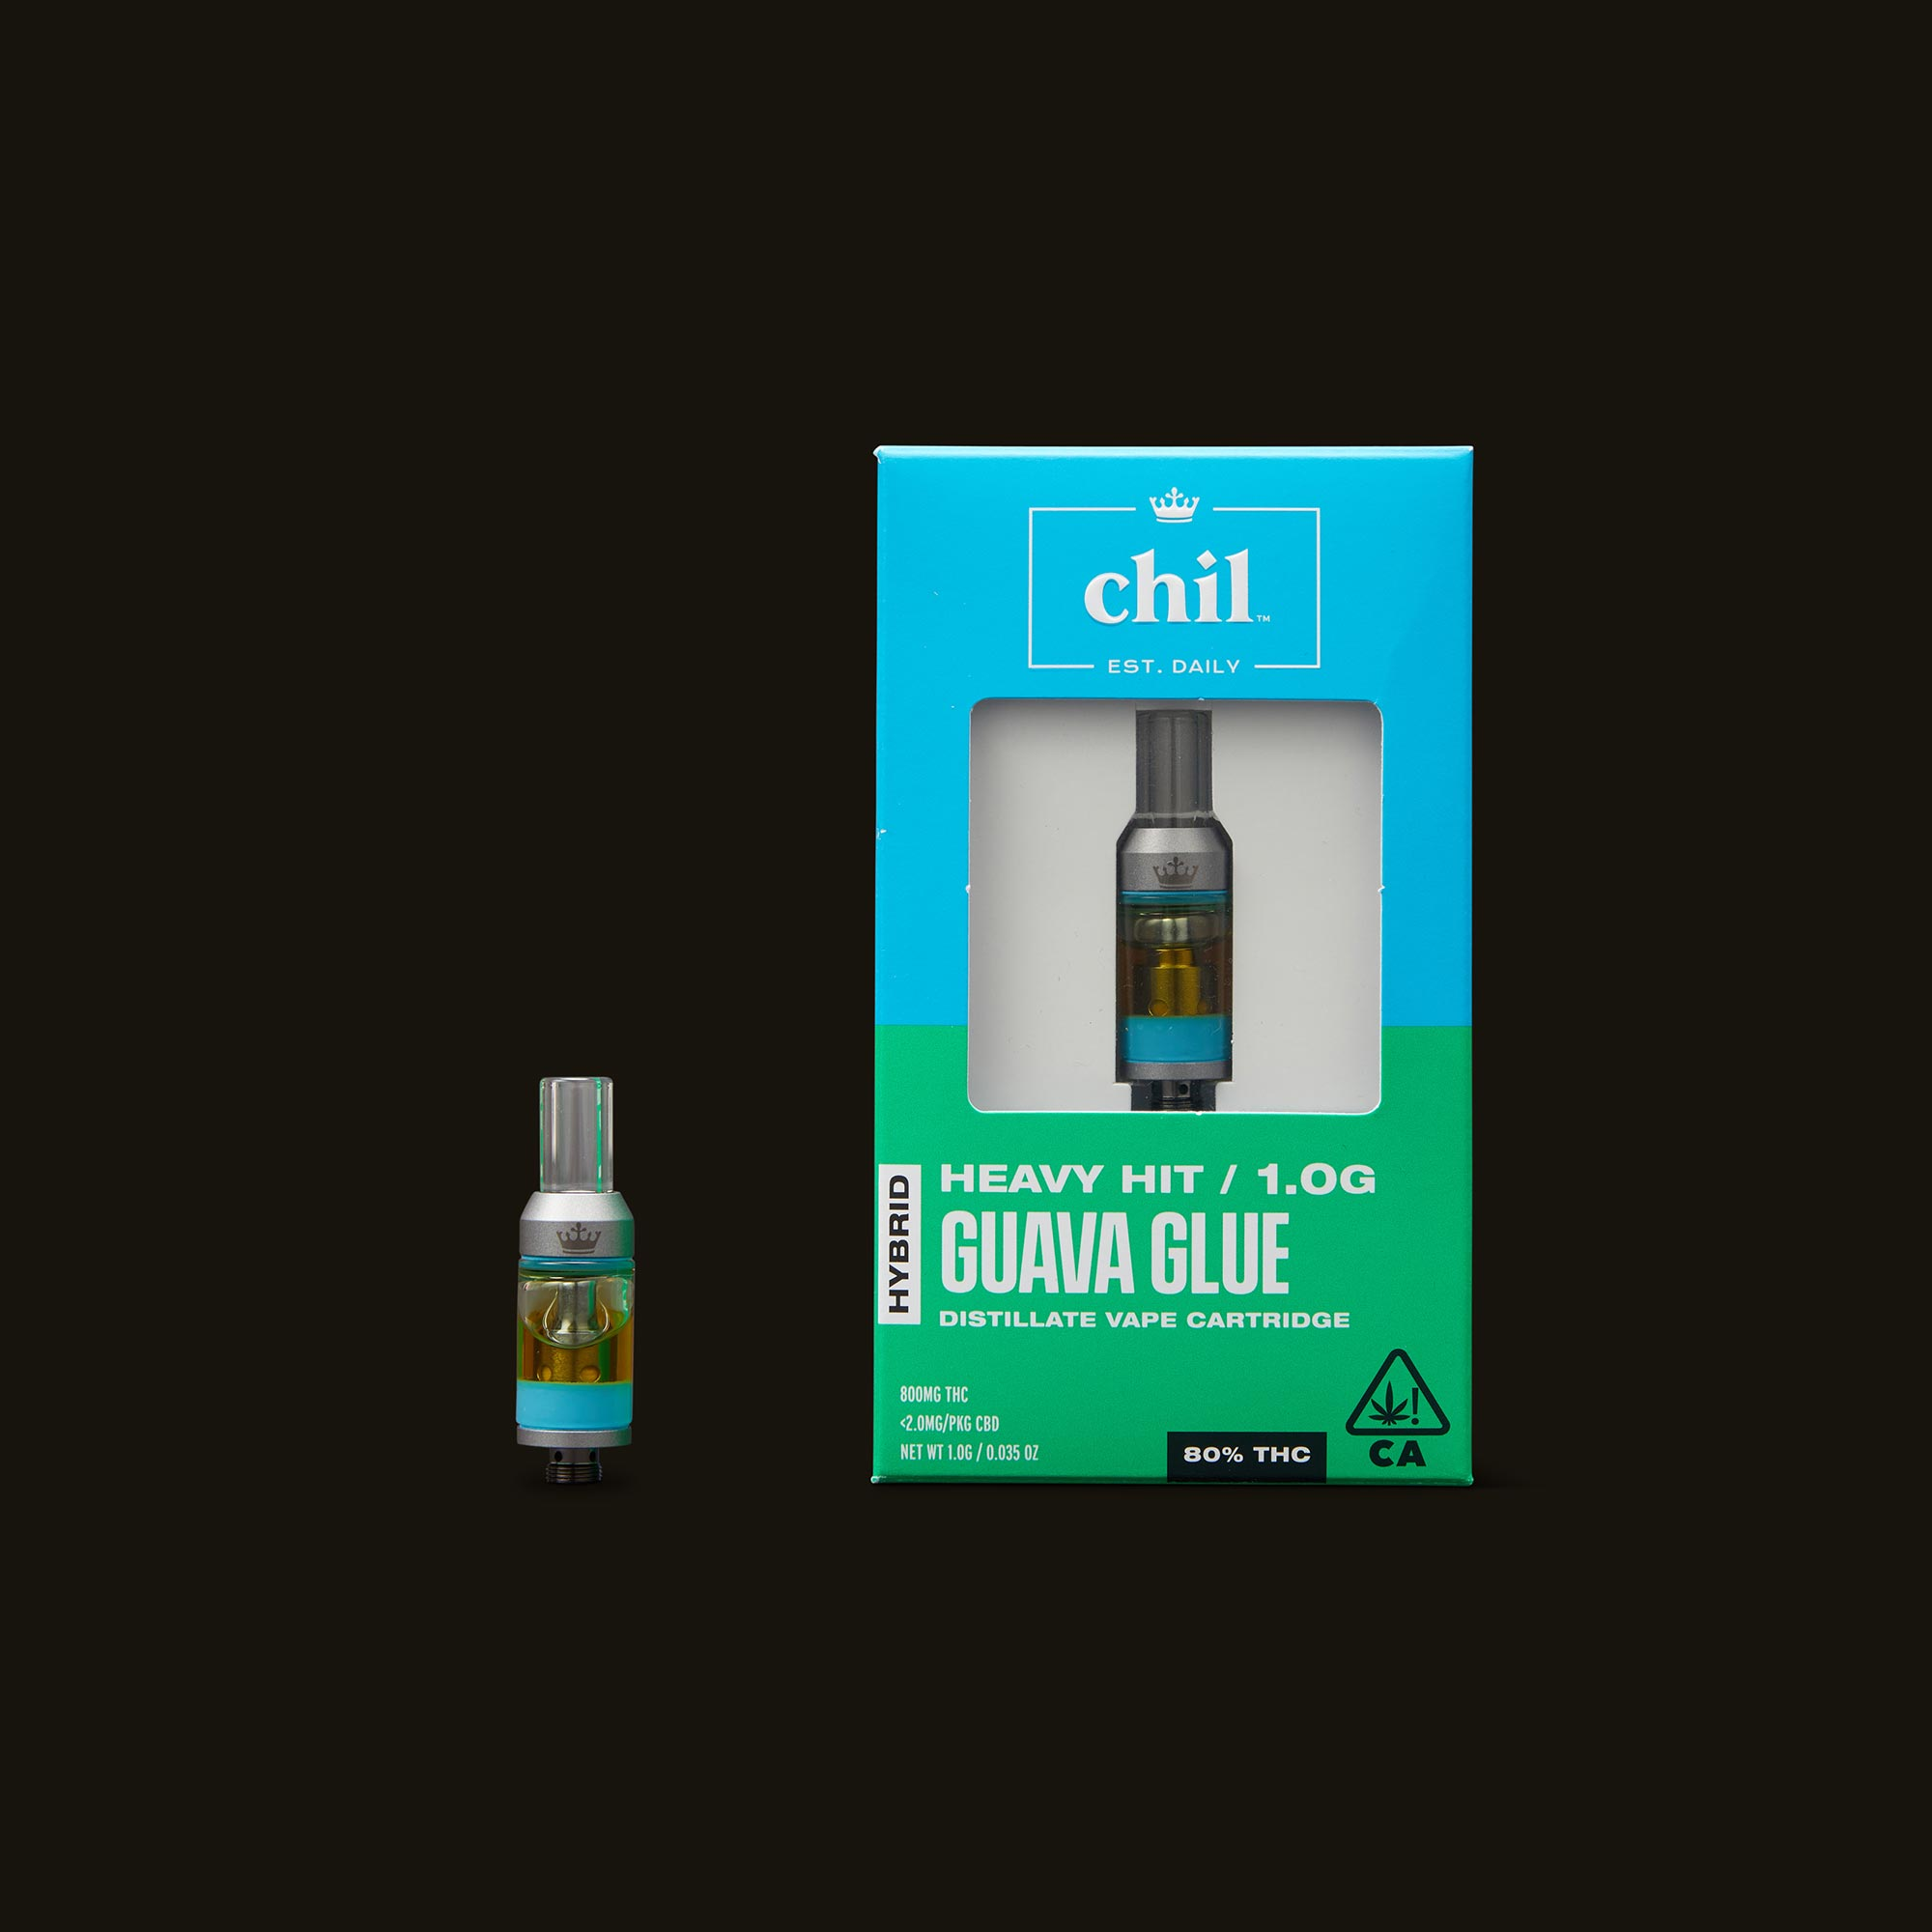 Chil Guava Glue Cartridge with Box